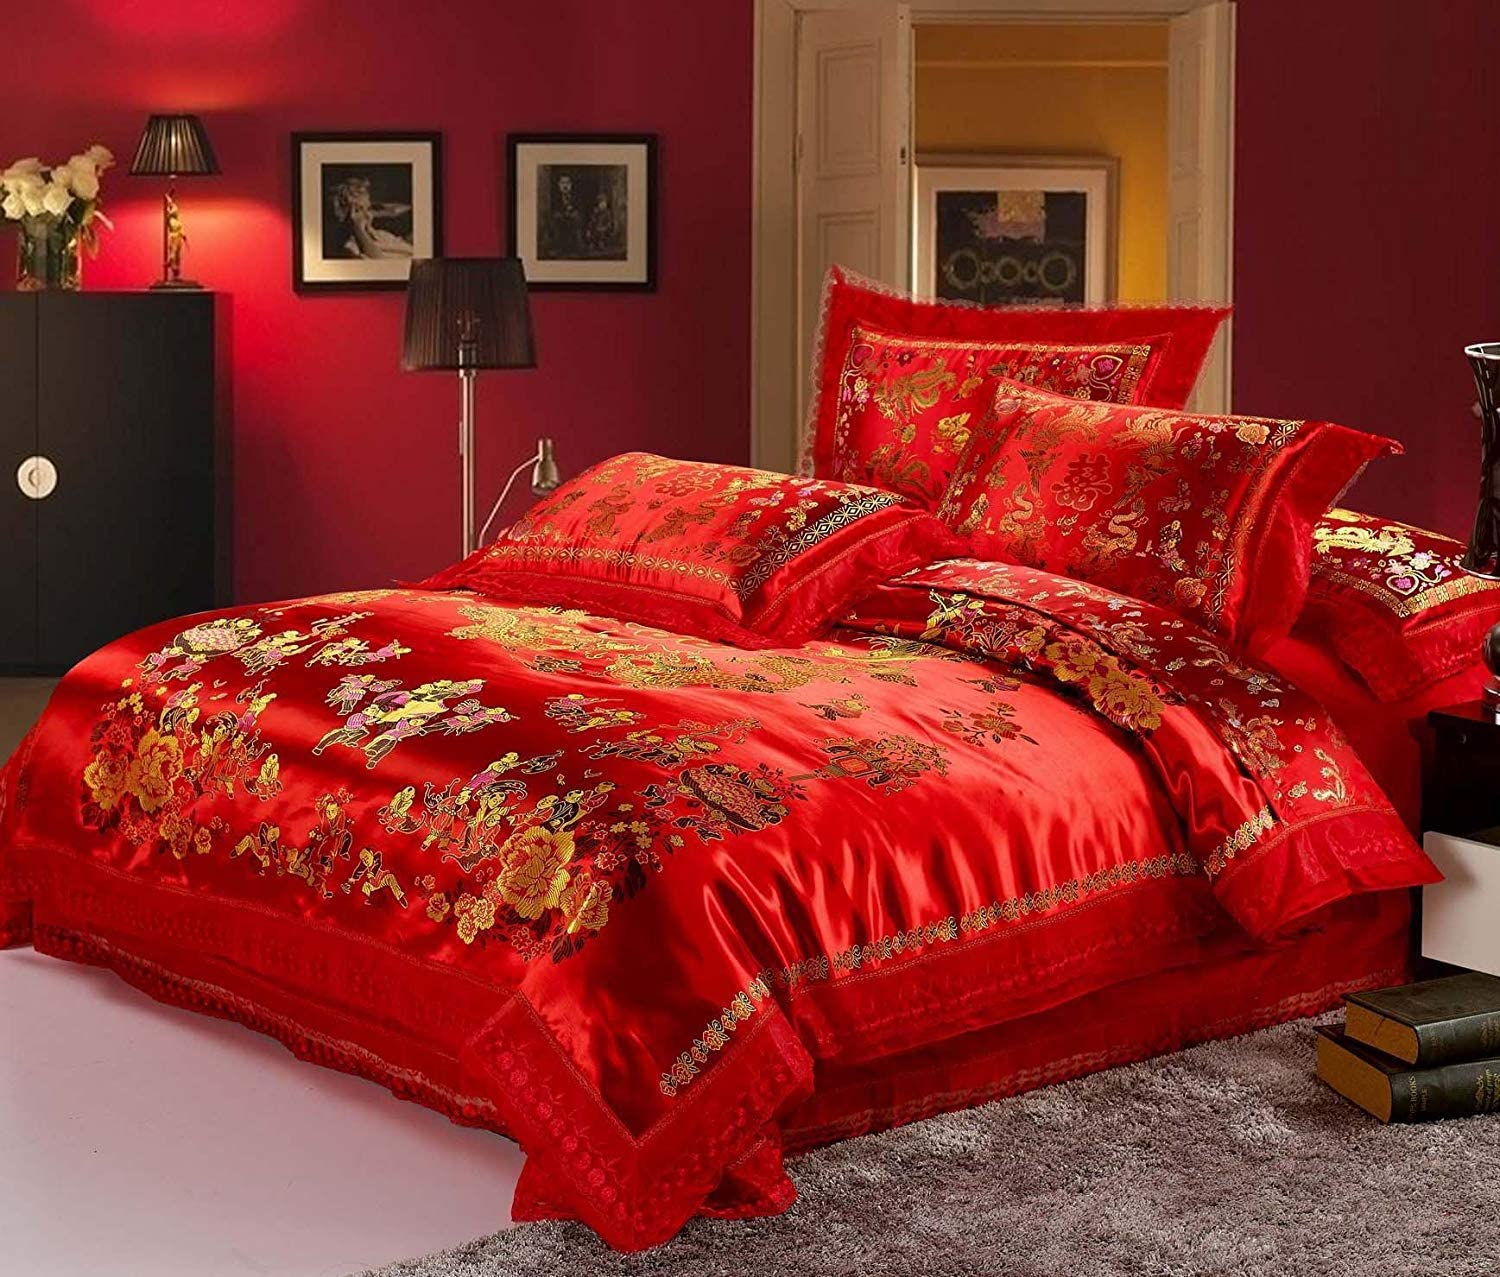 Norson Chinese Traditional Red Sheet Asian Bedding Queen with Dragon and Phoenix Bird Embroidery Duvet Cover Set 4pcs(King, style5)